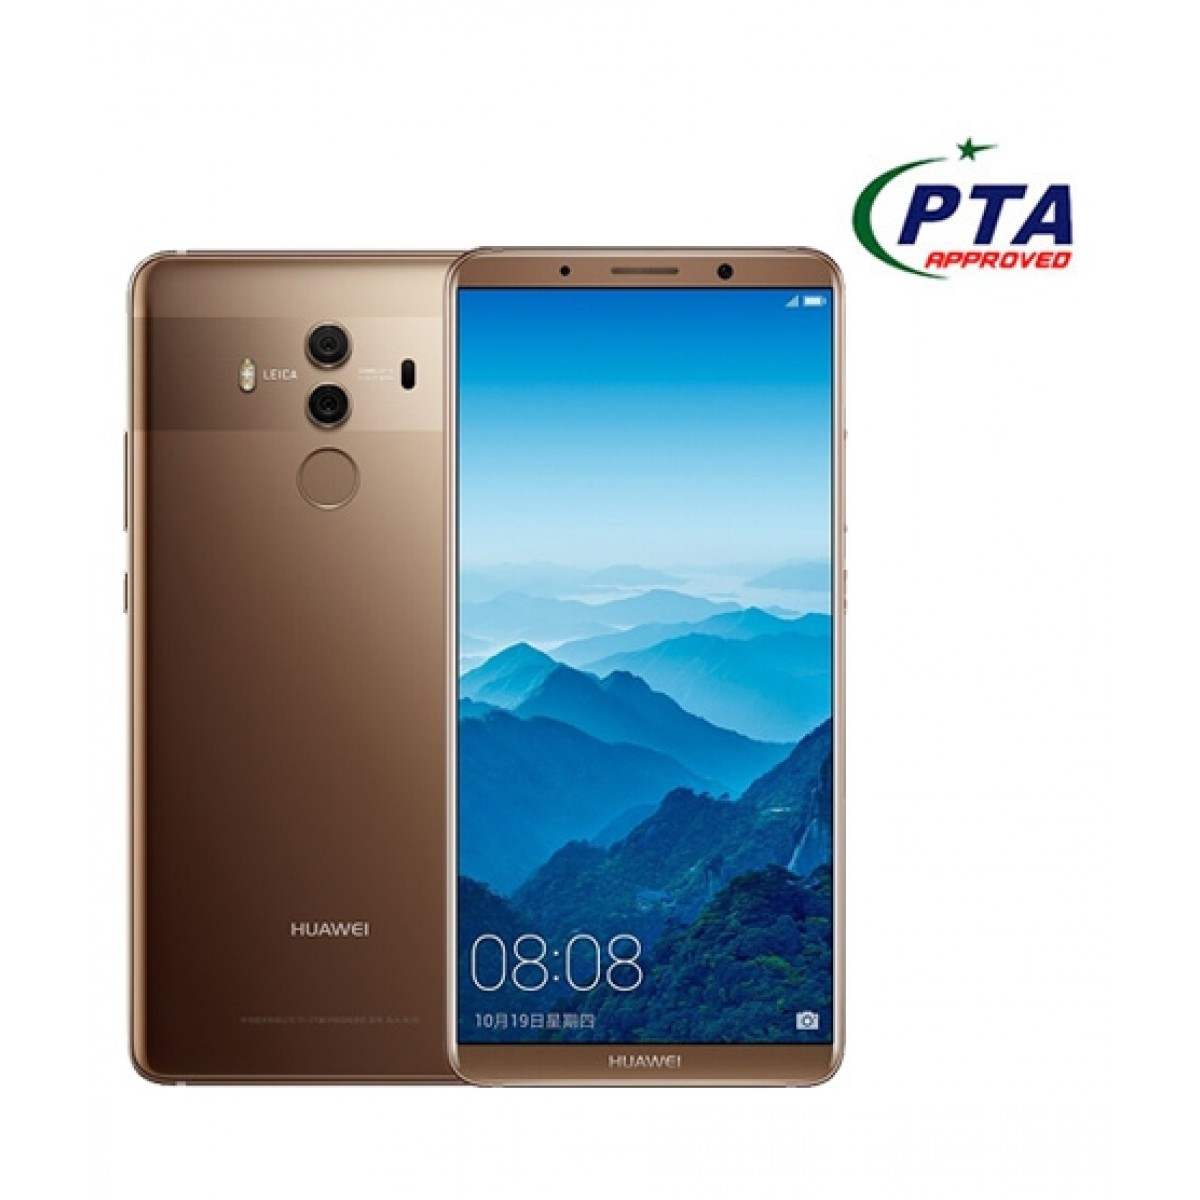 Huawei Mate 10 Pro 64GB Dual Sim Mocha Brown